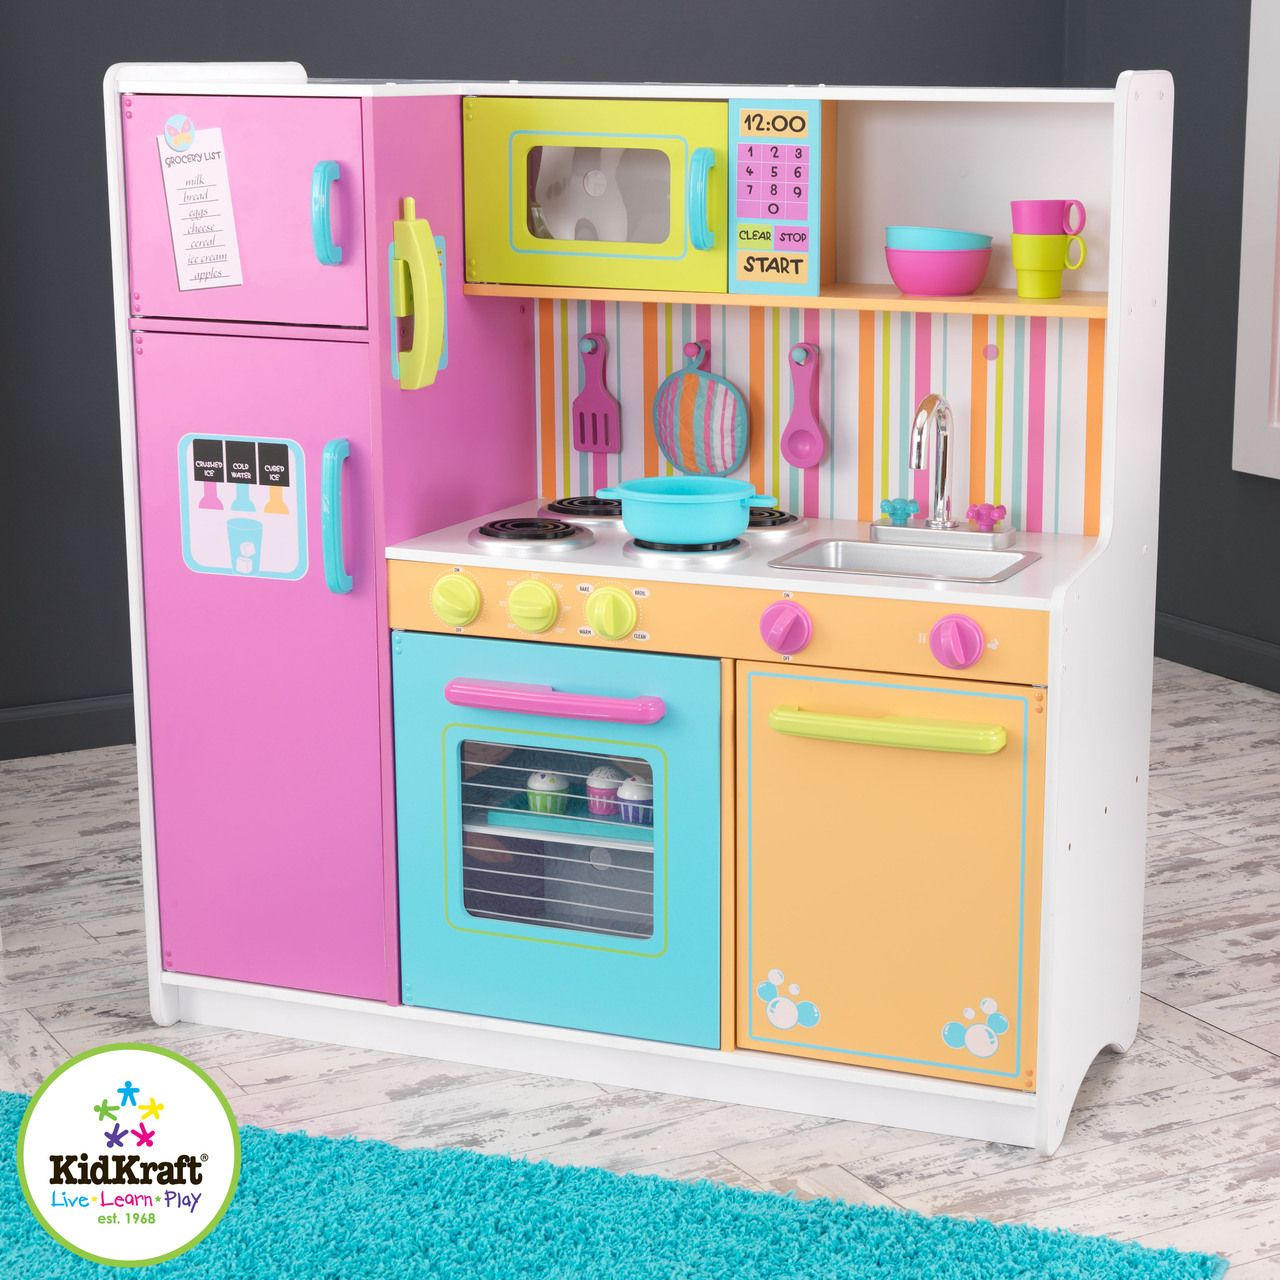 Kidkraft Deluxe And Bright Wooden Kitchen